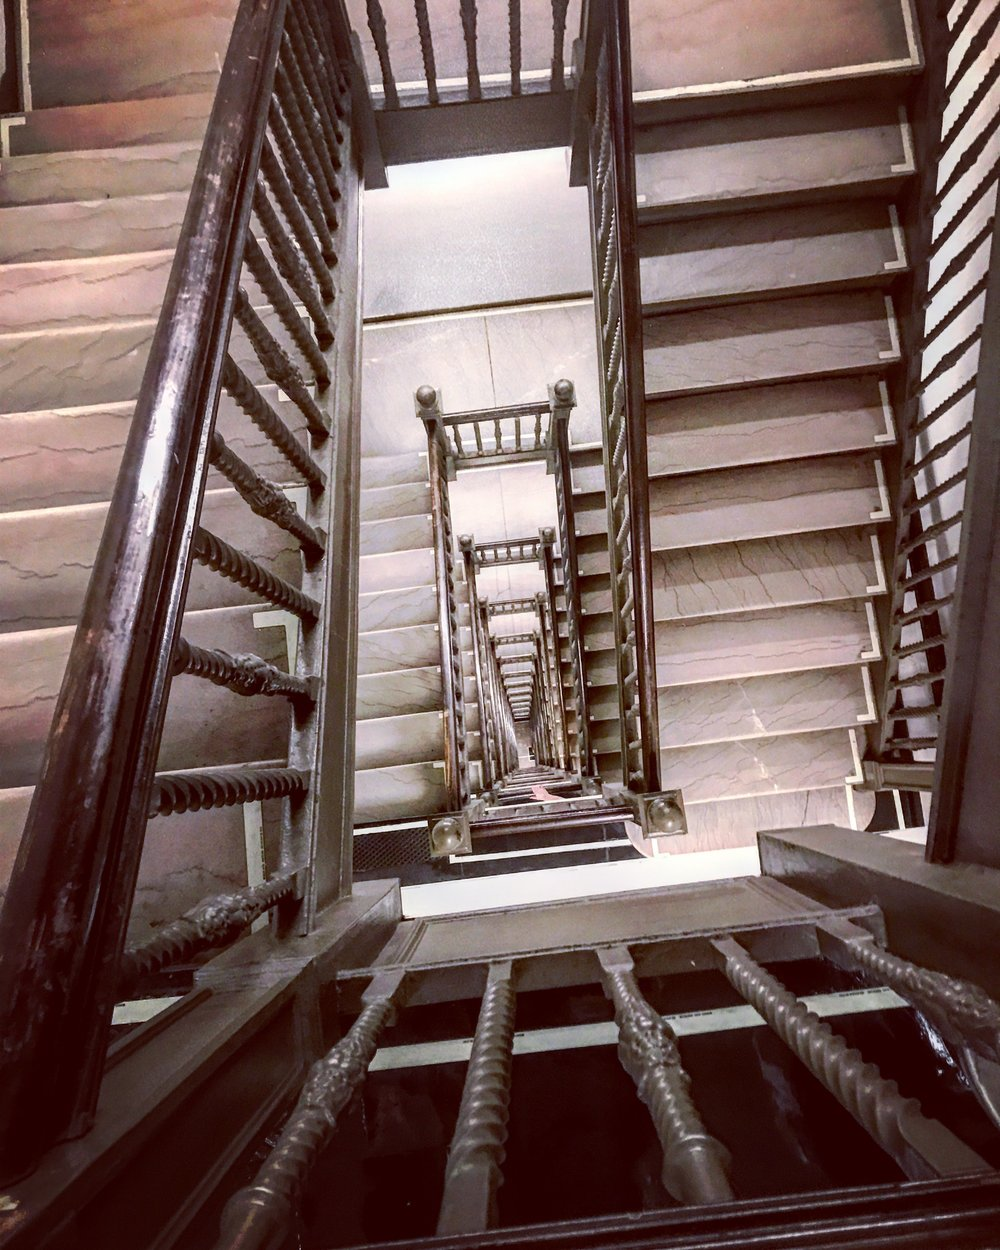 The crazy, amazing, terrifying staircase inside the Flatiron Building that gave me vertigo. My editor assured me that nobody has fallen from here, but I don't know if I believe him . . .